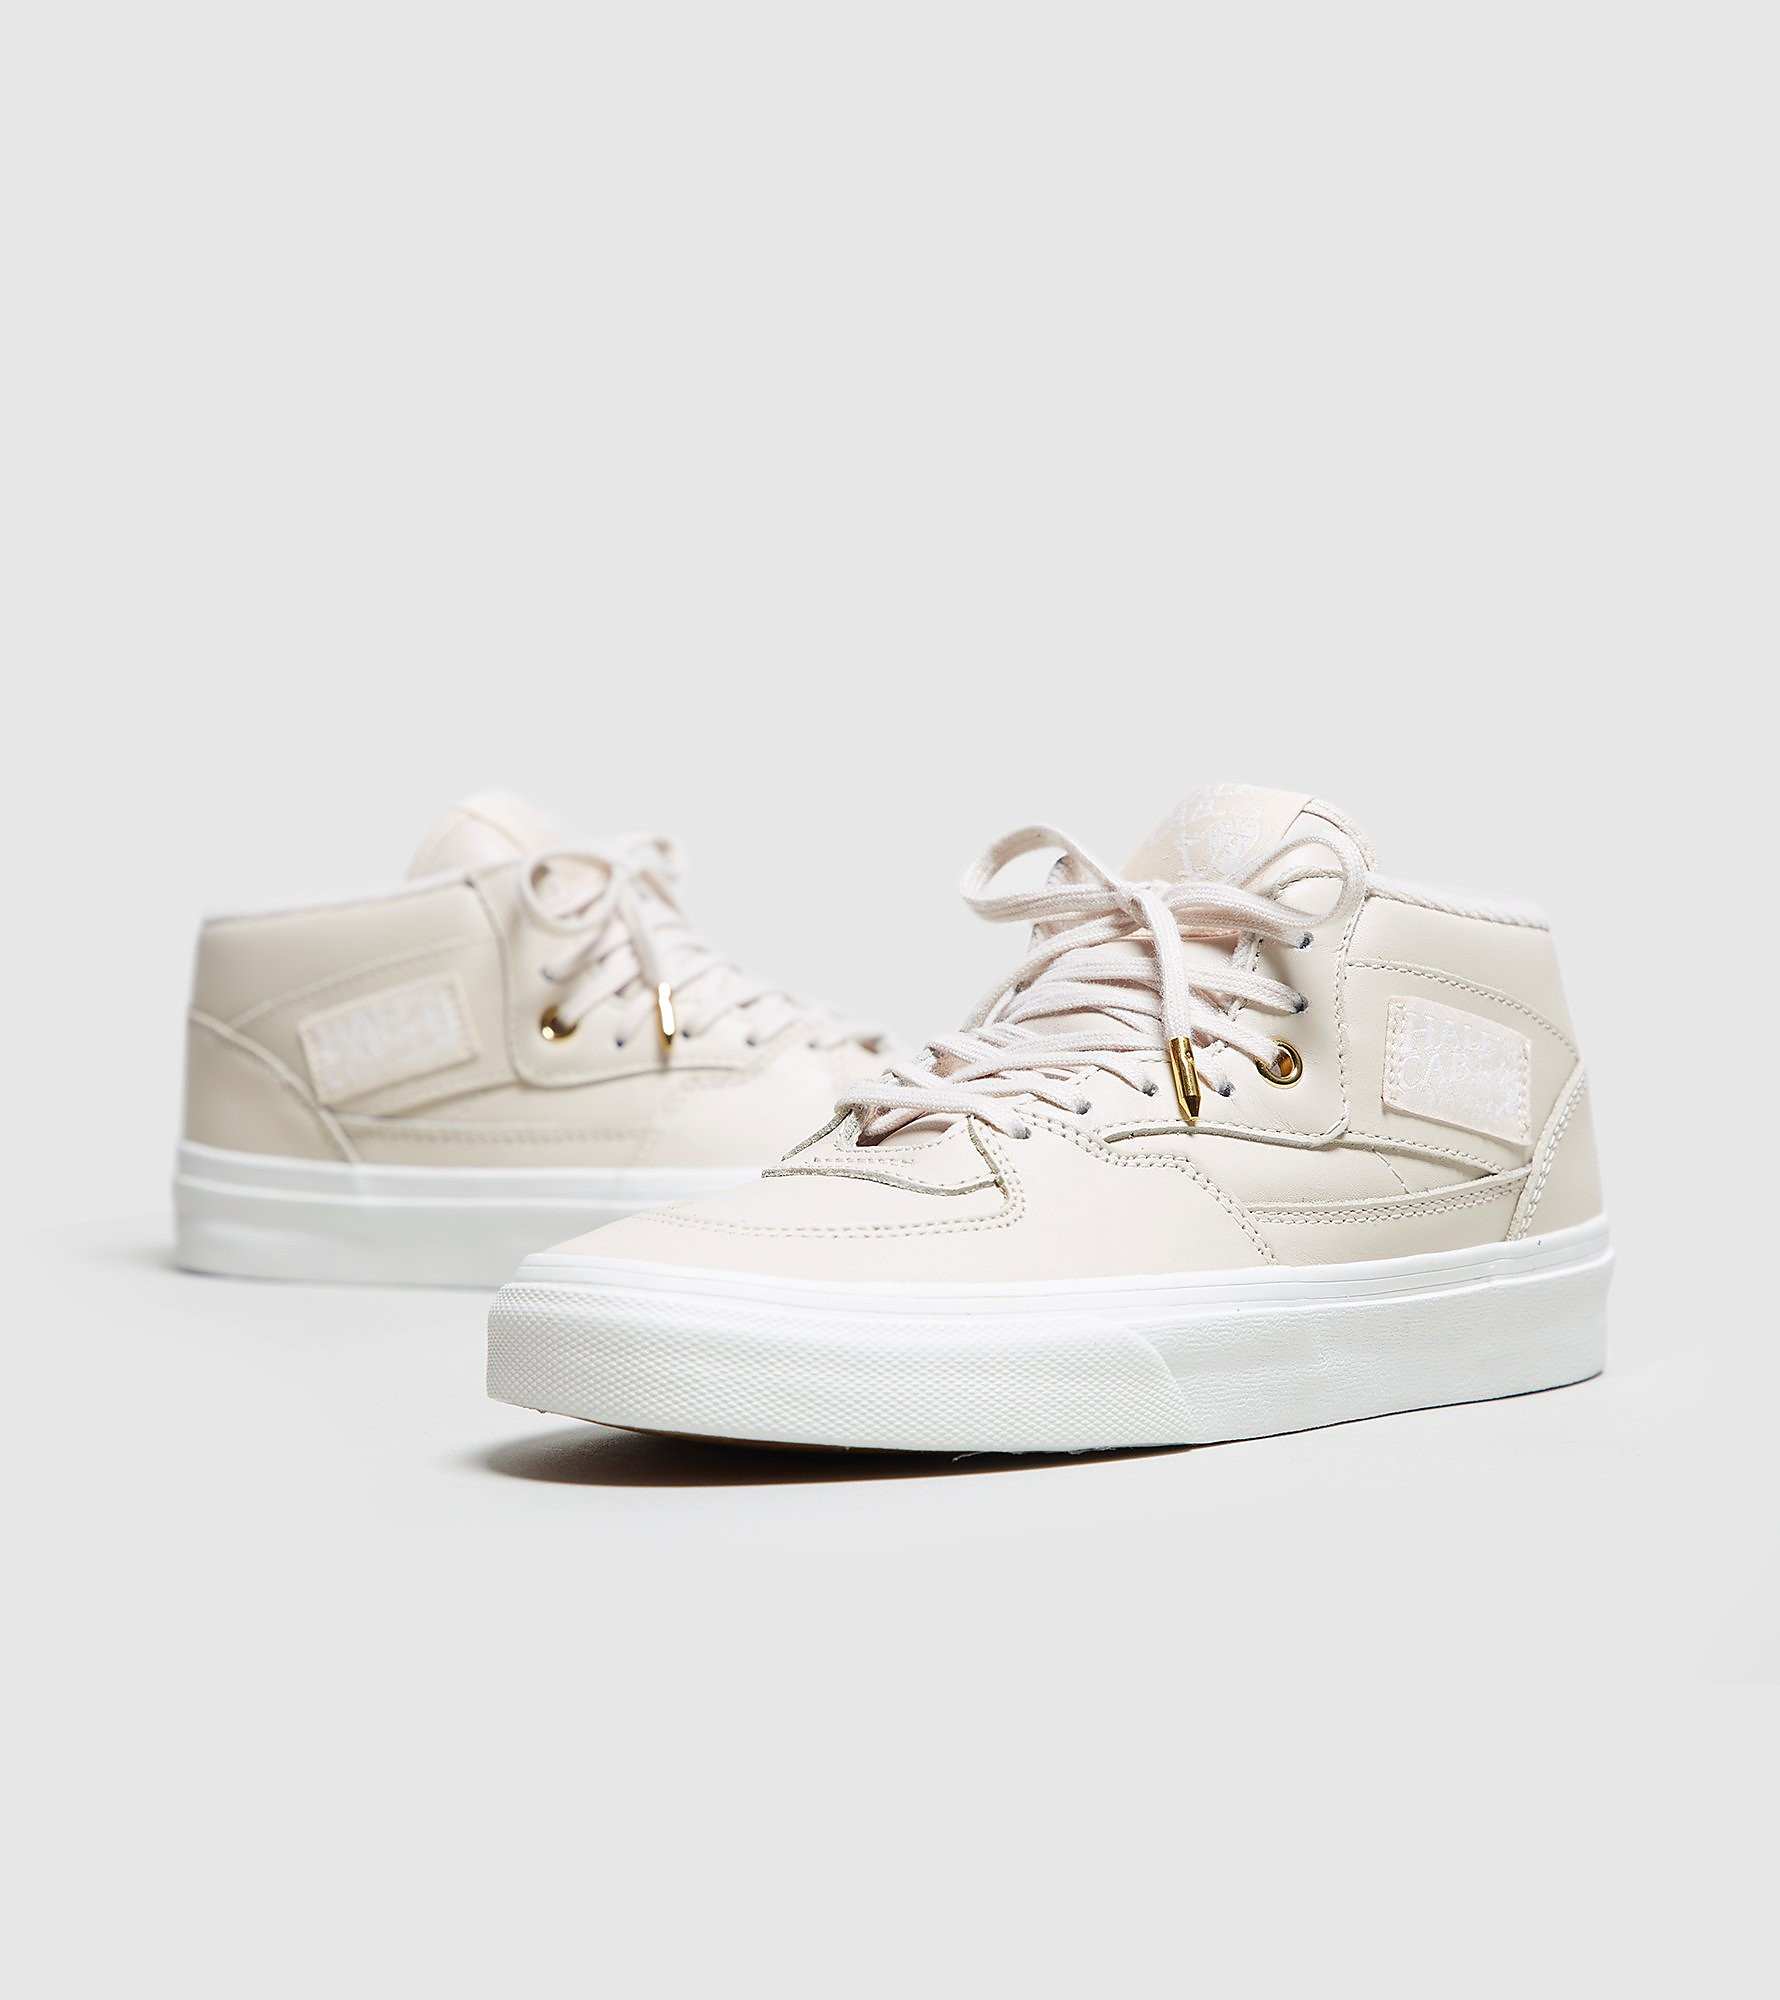 Vans Leather Half Cab DX Women's